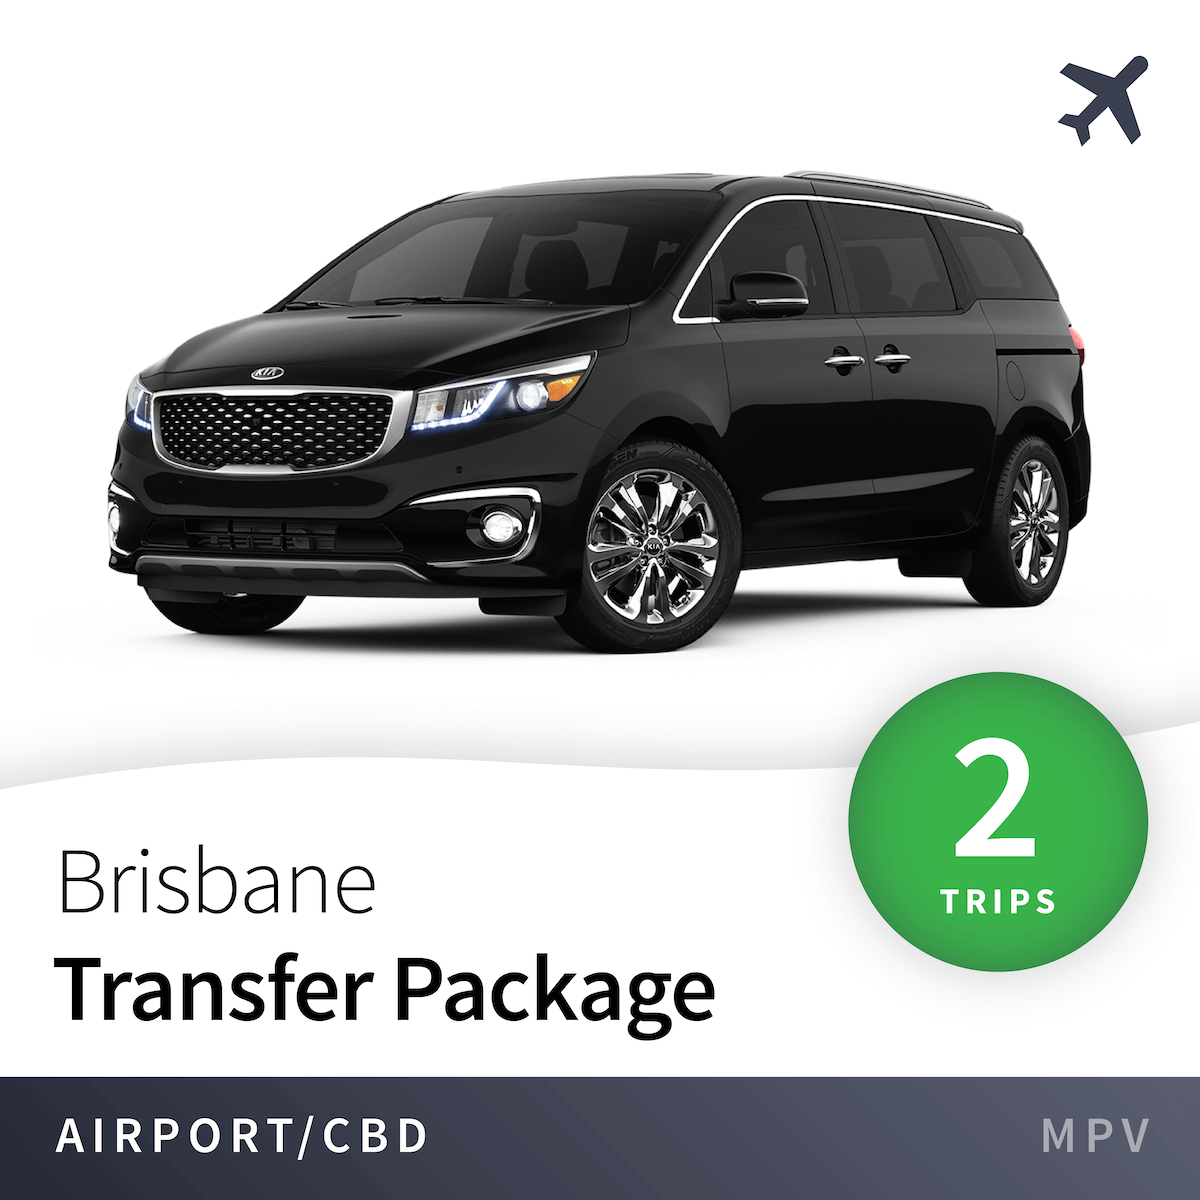 Brisbane Airport Transfer Package - MPV (2 Trips) 6